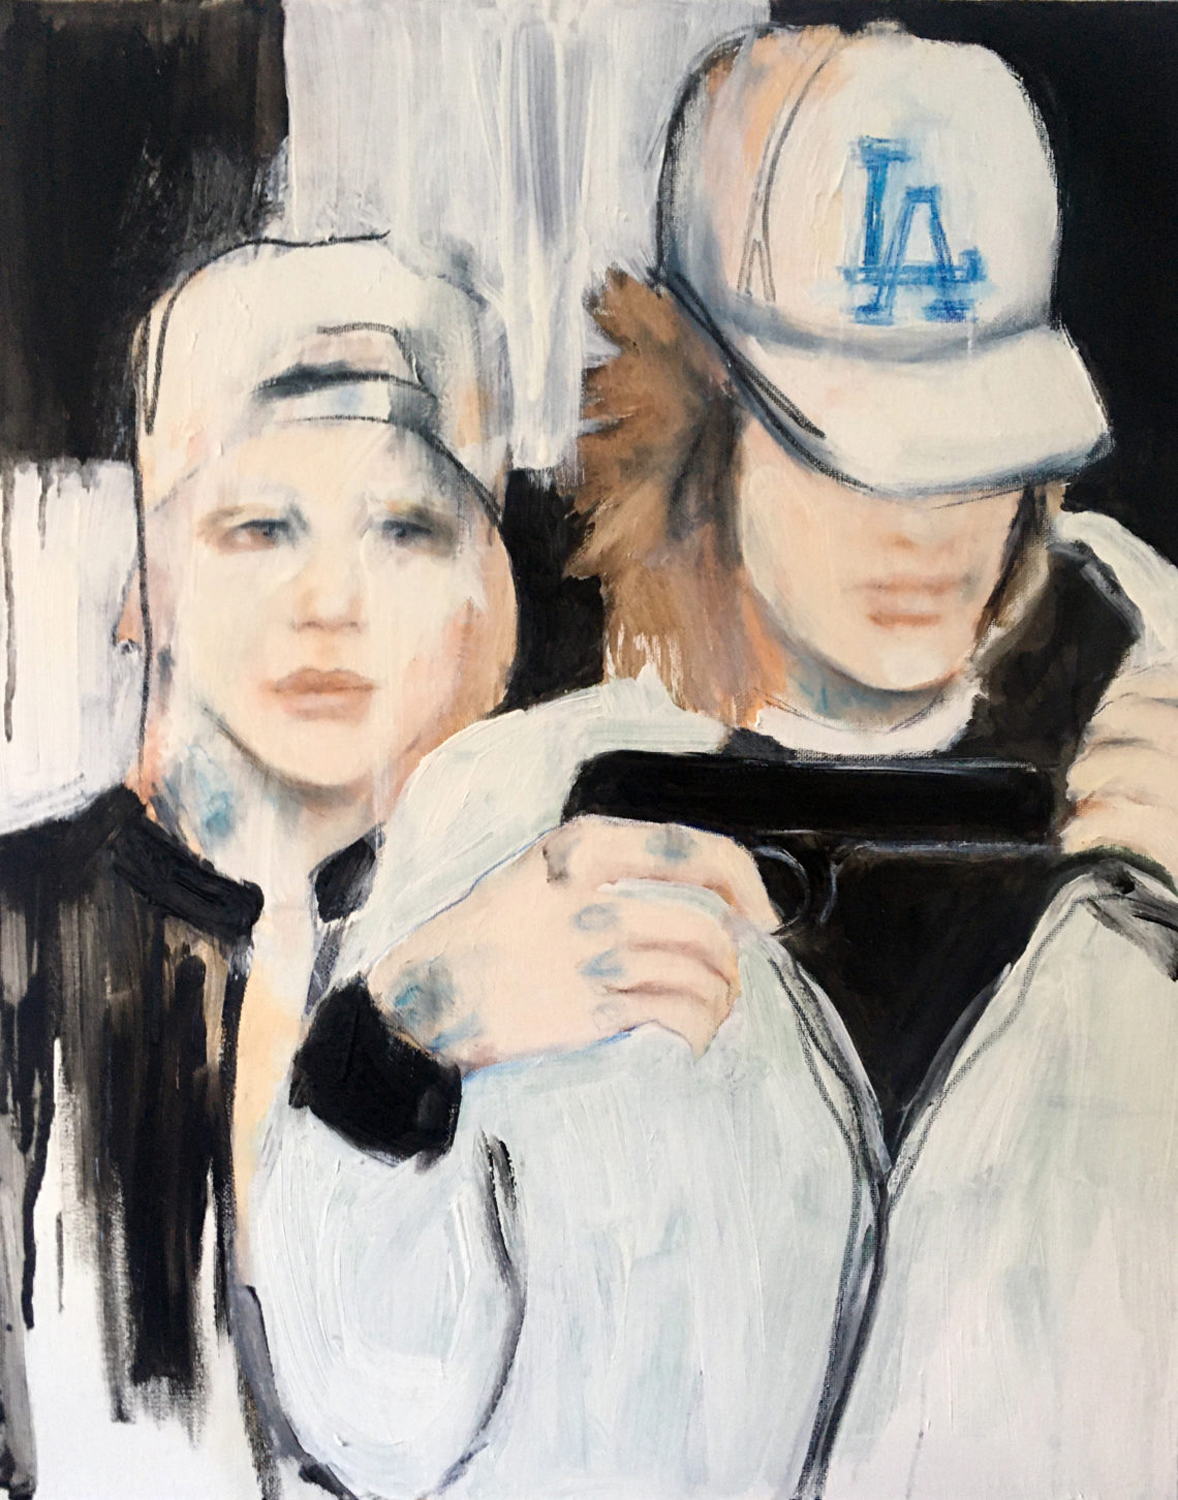 Painting of two young people in baseball caps